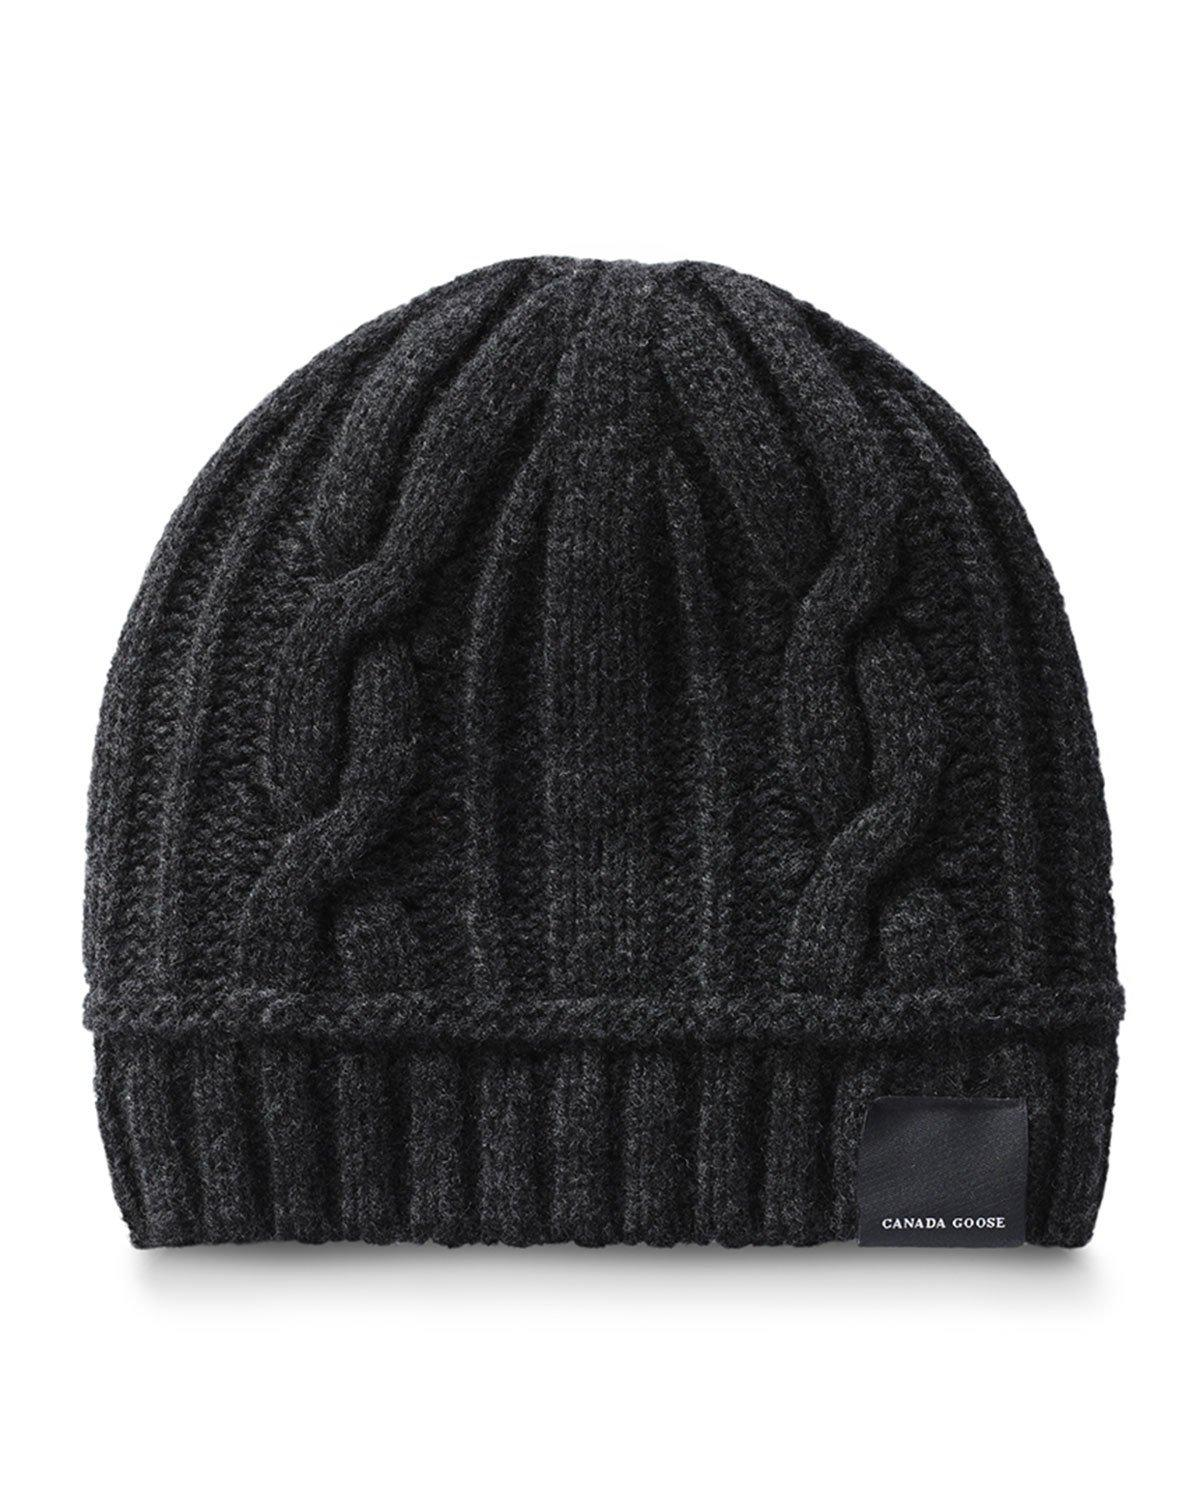 79317171be46b Canada Goose Cabled Merino Wool Toque Beanie - Black